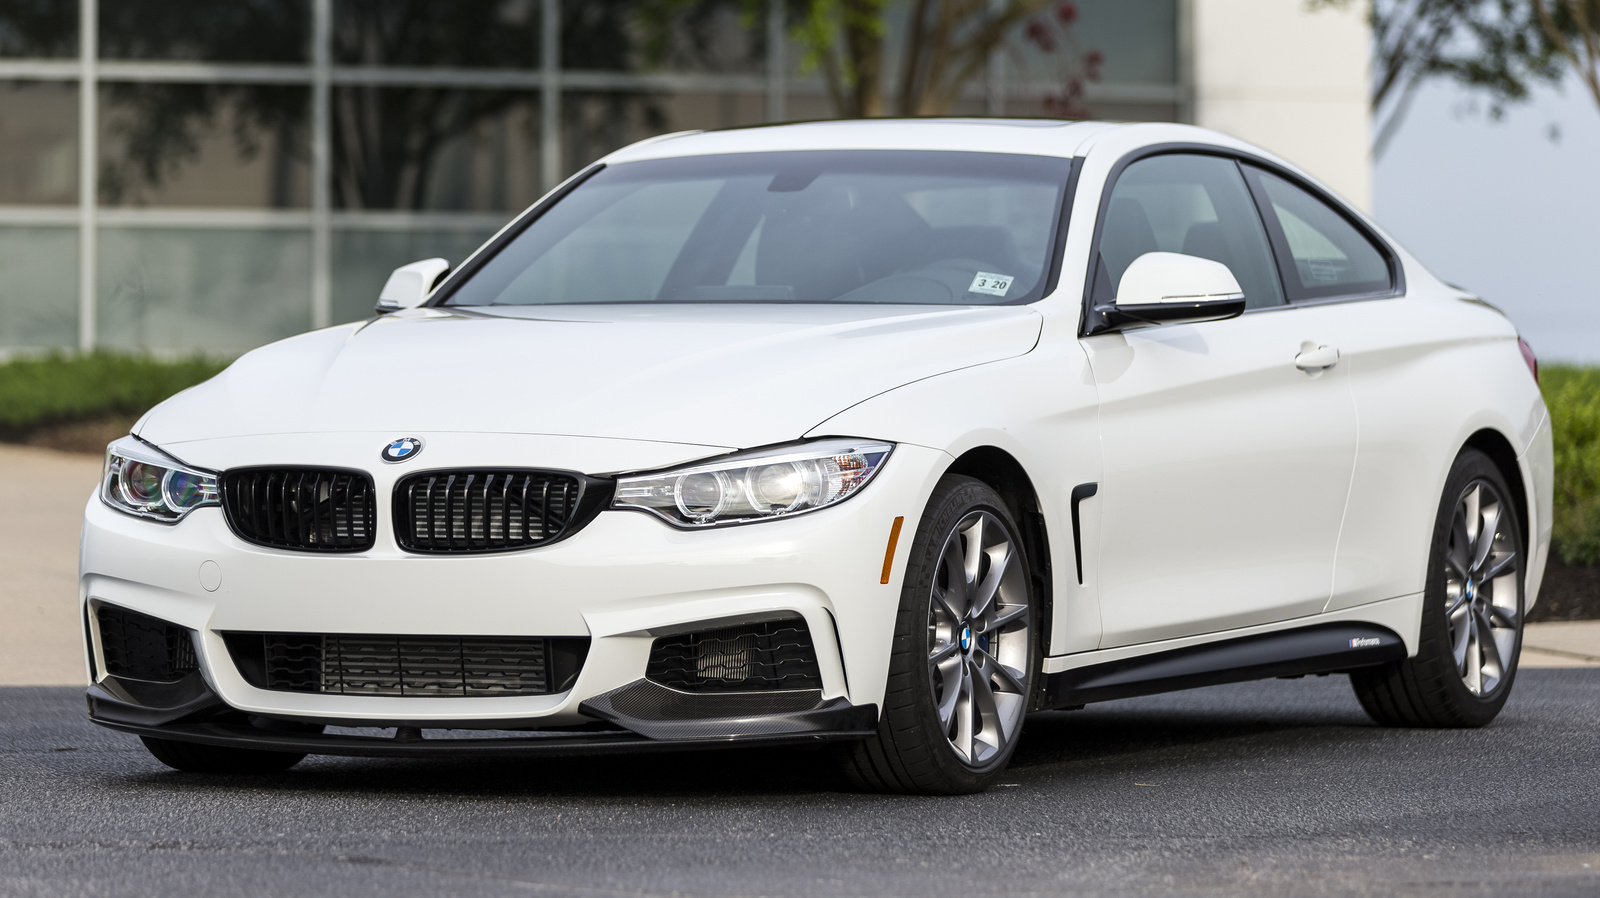 2016 bmw 4 series - overview - cargurus